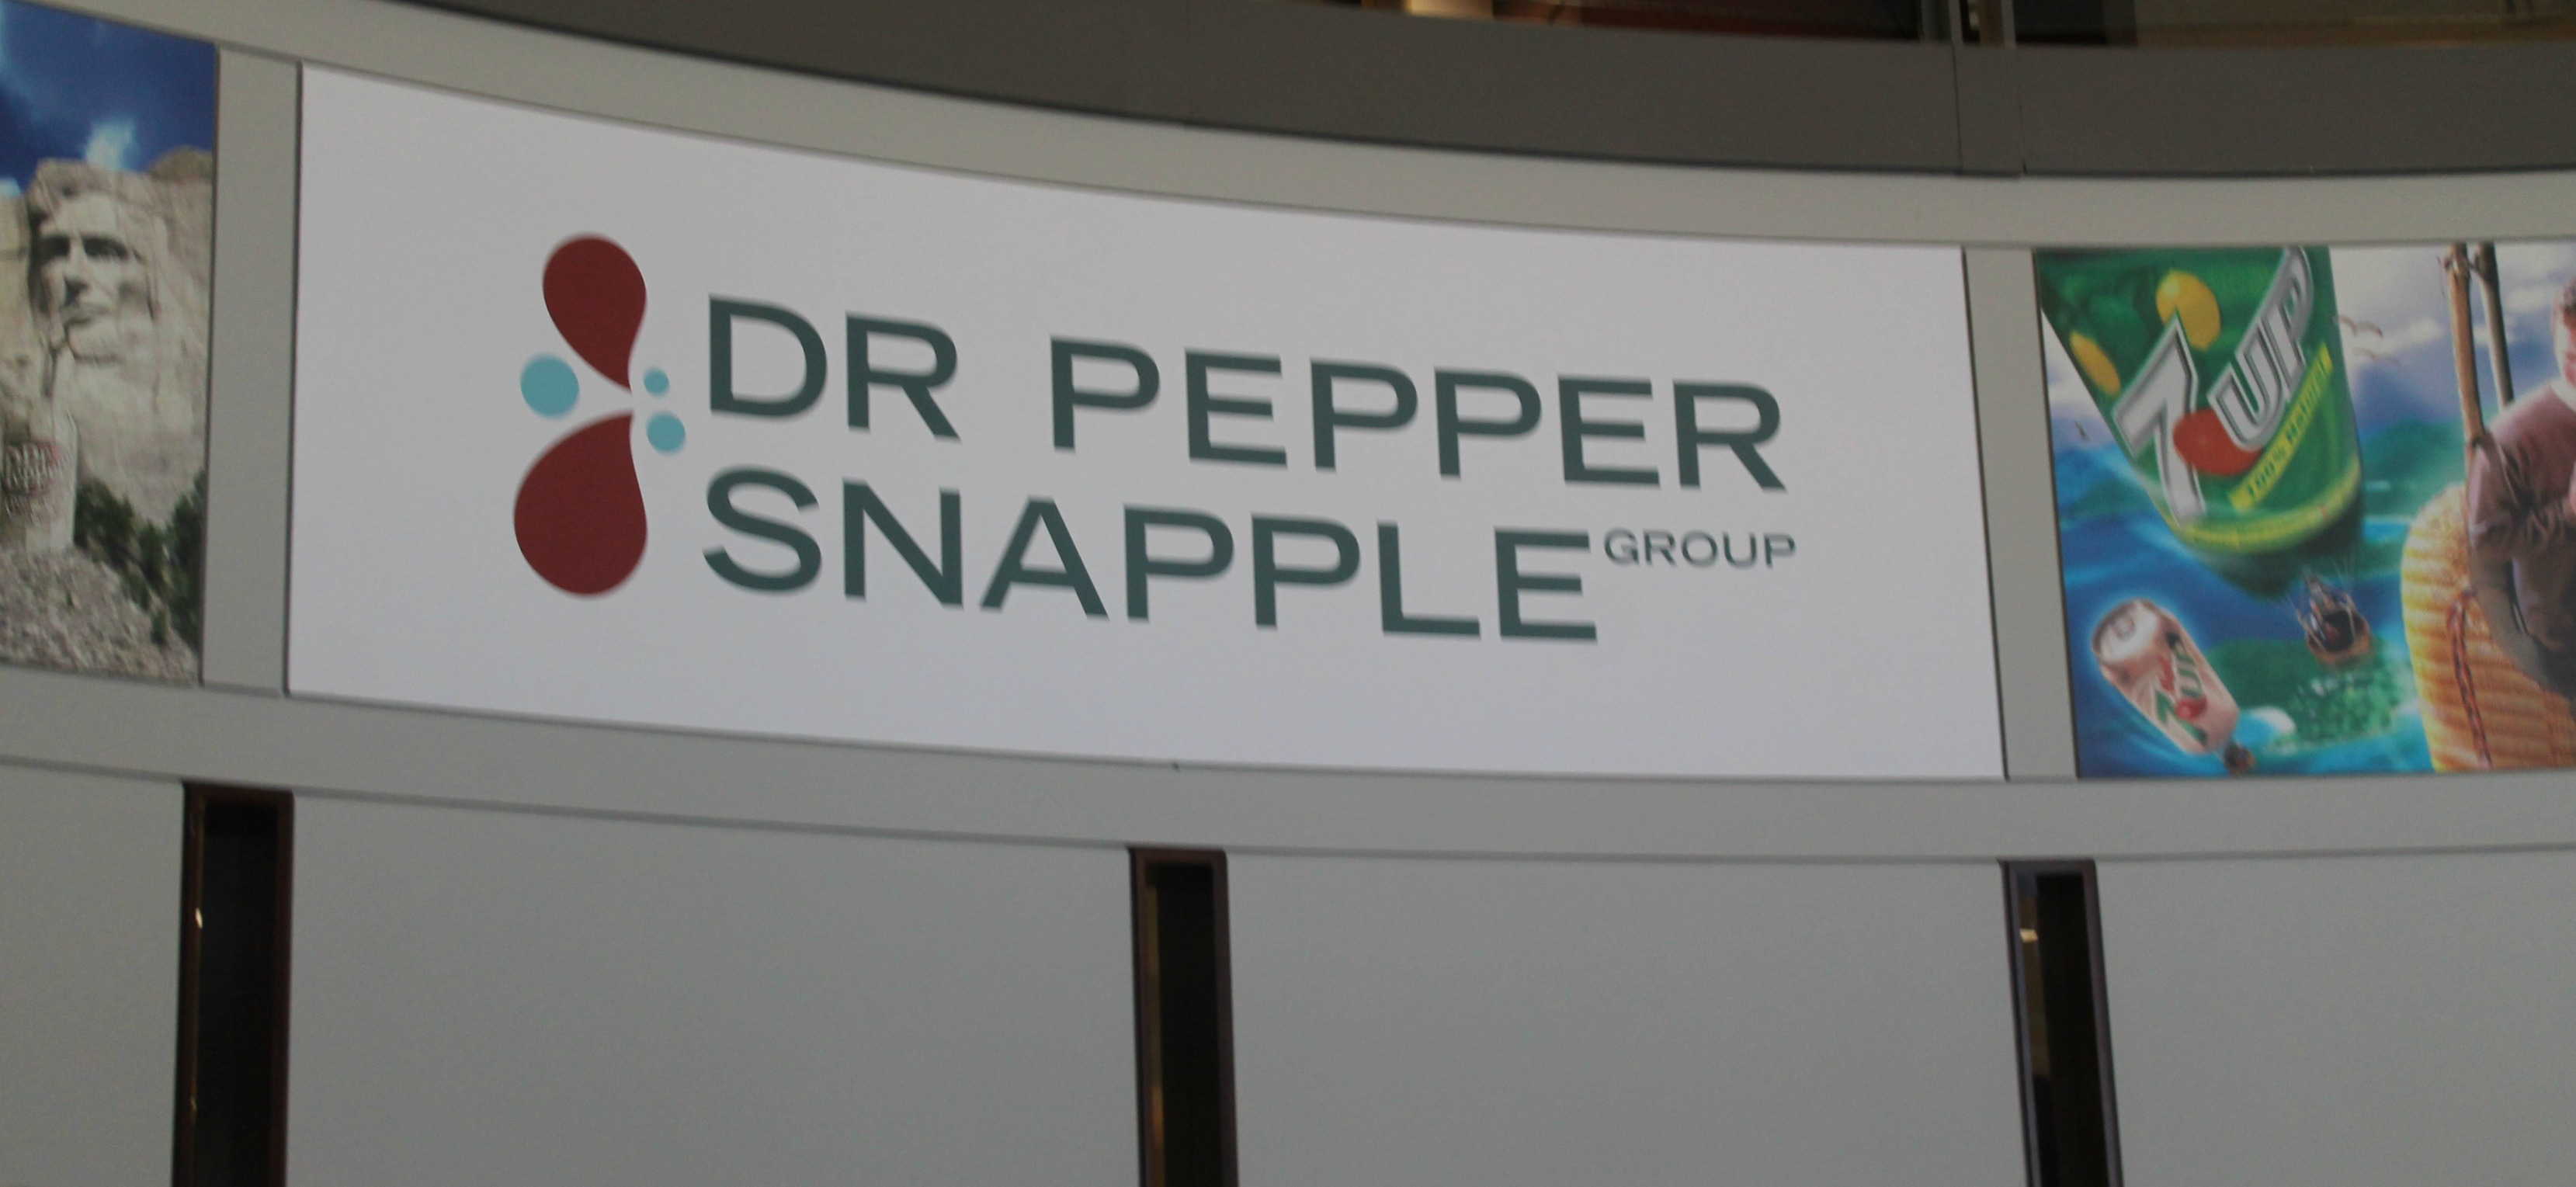 snapple dr pepper study Dr pepper snapple group (nyse: dps) is a leading producer of flavored beverages in north america and the caribbean our success is fueled by more than 50 brands that.